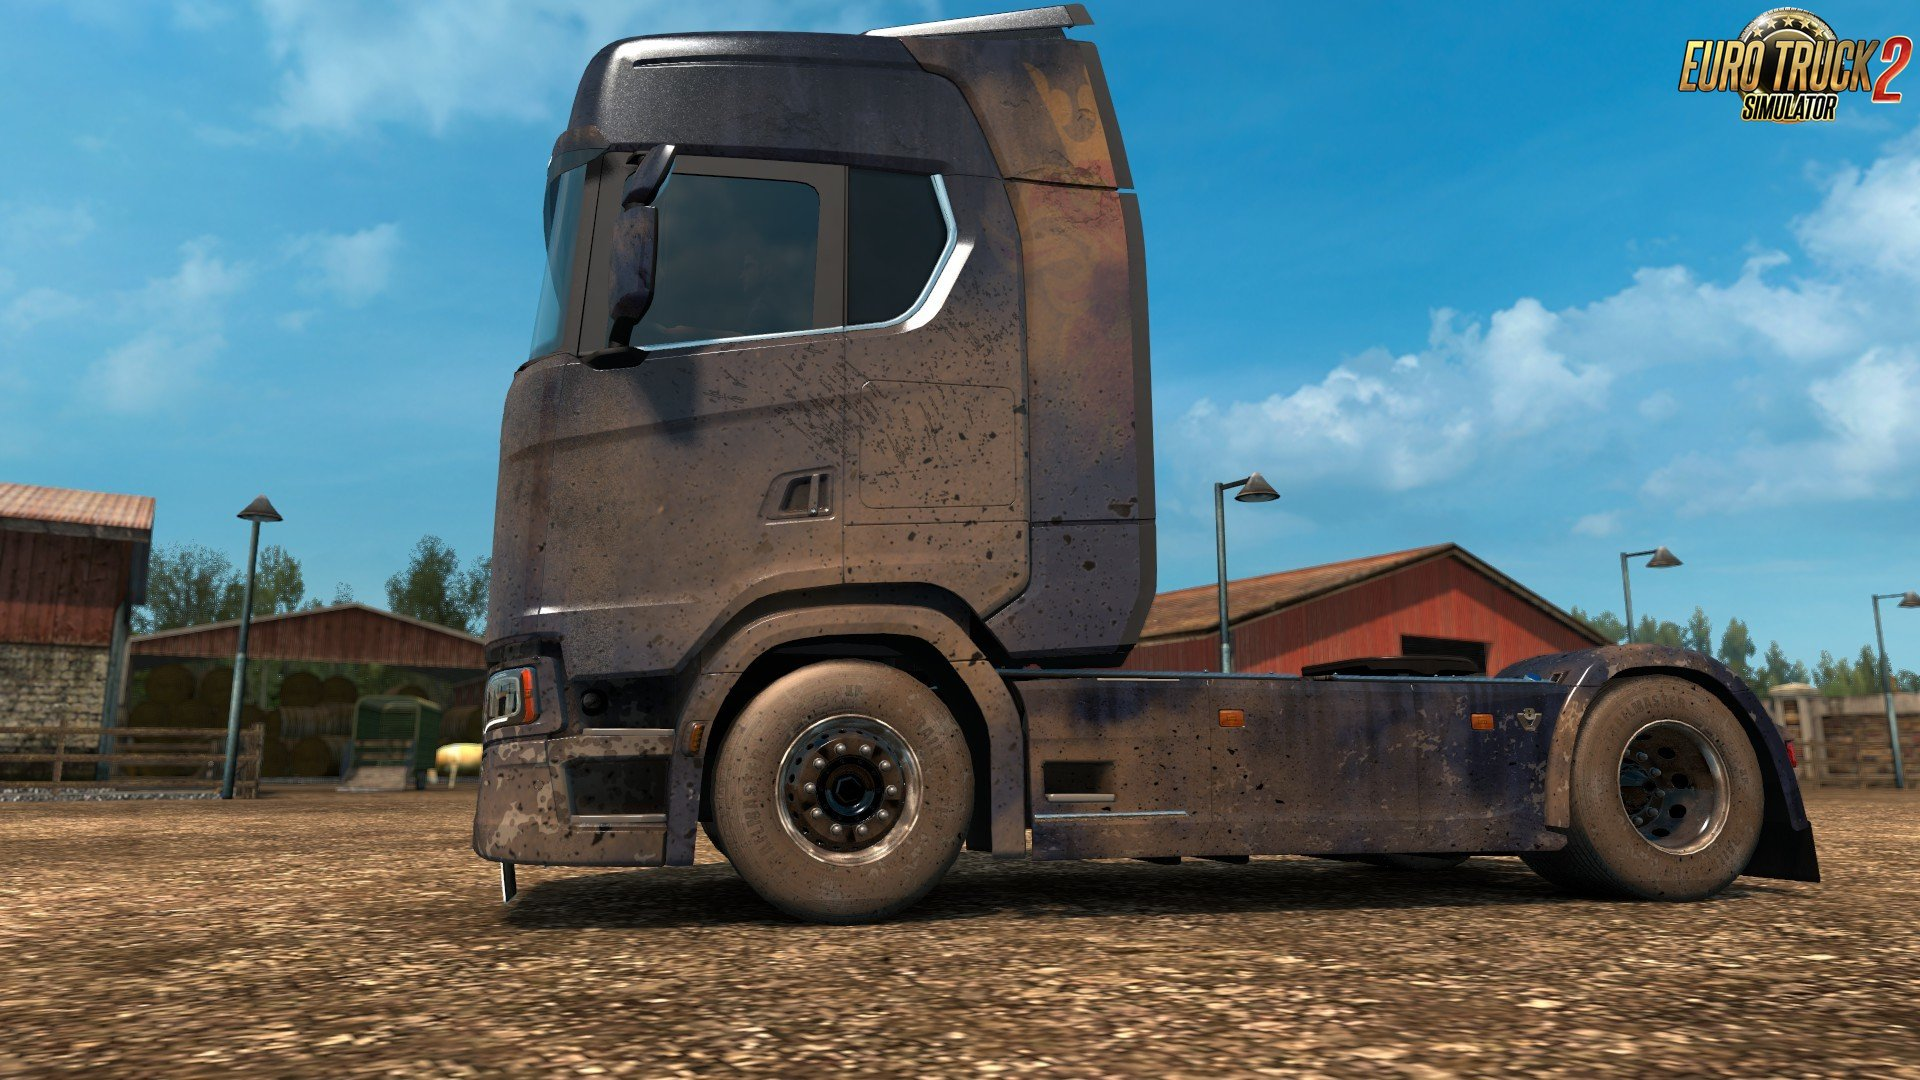 Dirty Scania S [version 1.0.2] by l1zzy